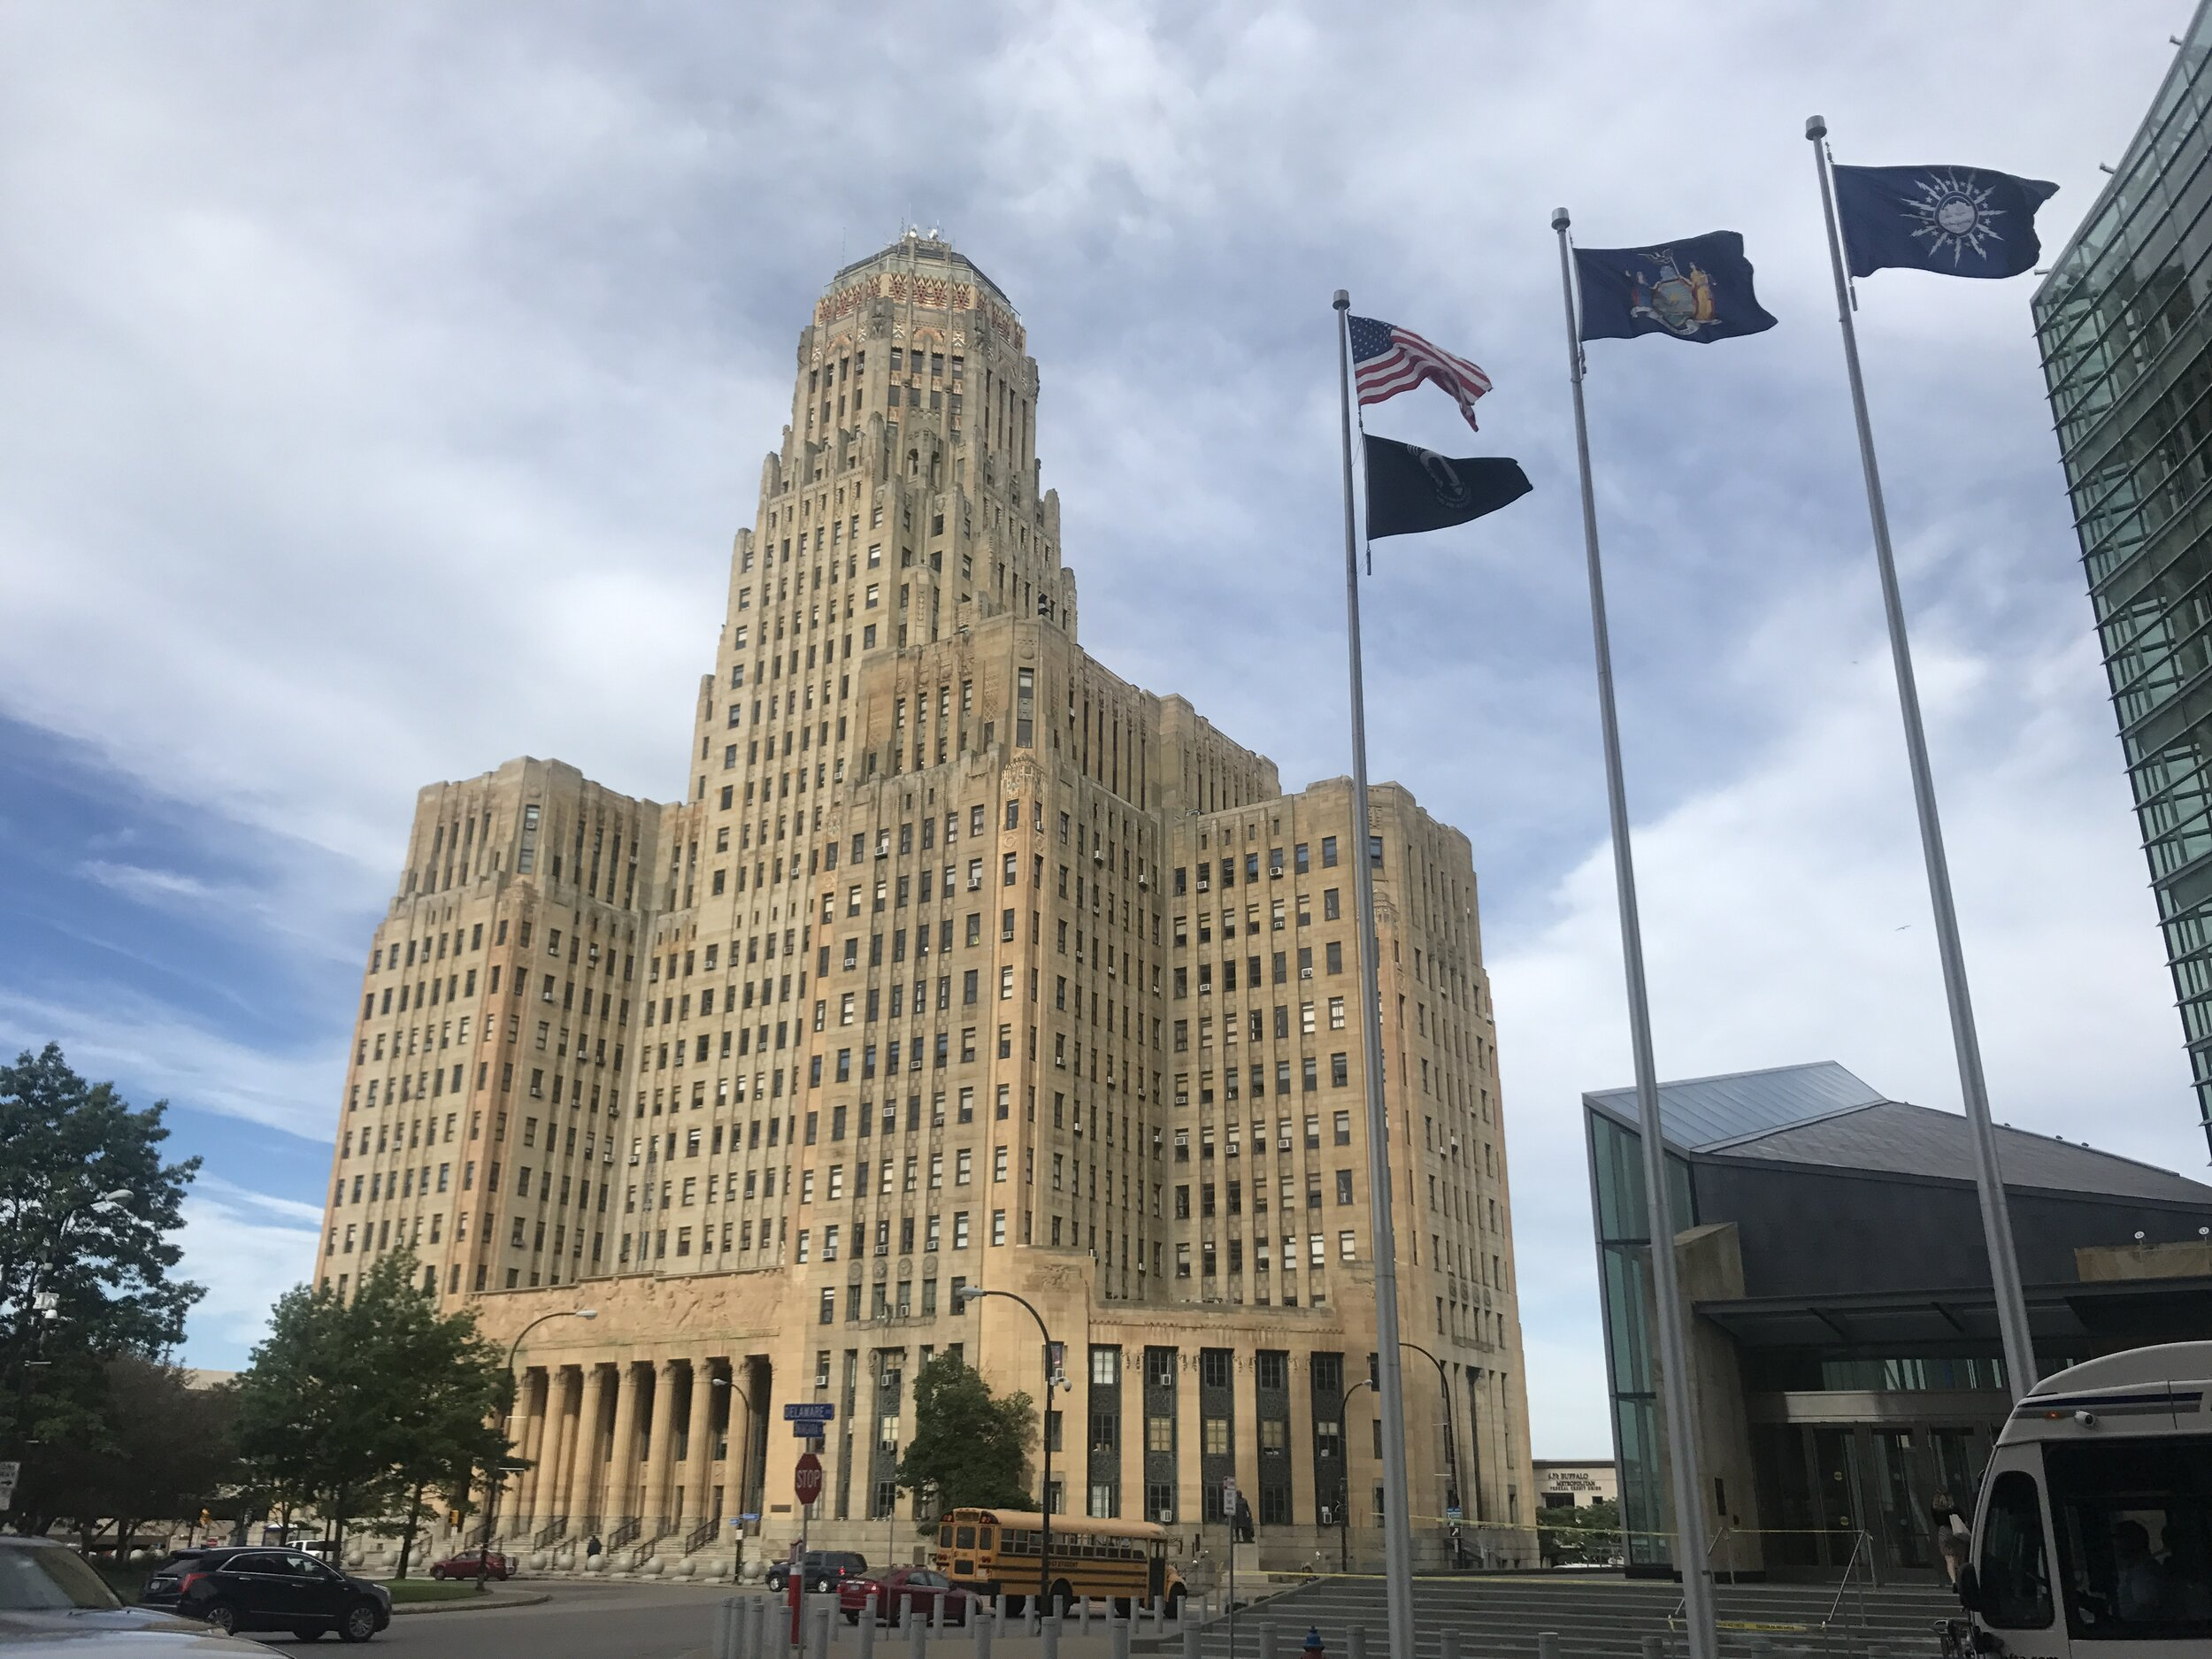 one of my favorite spots to take photos, Buffalo City Hall